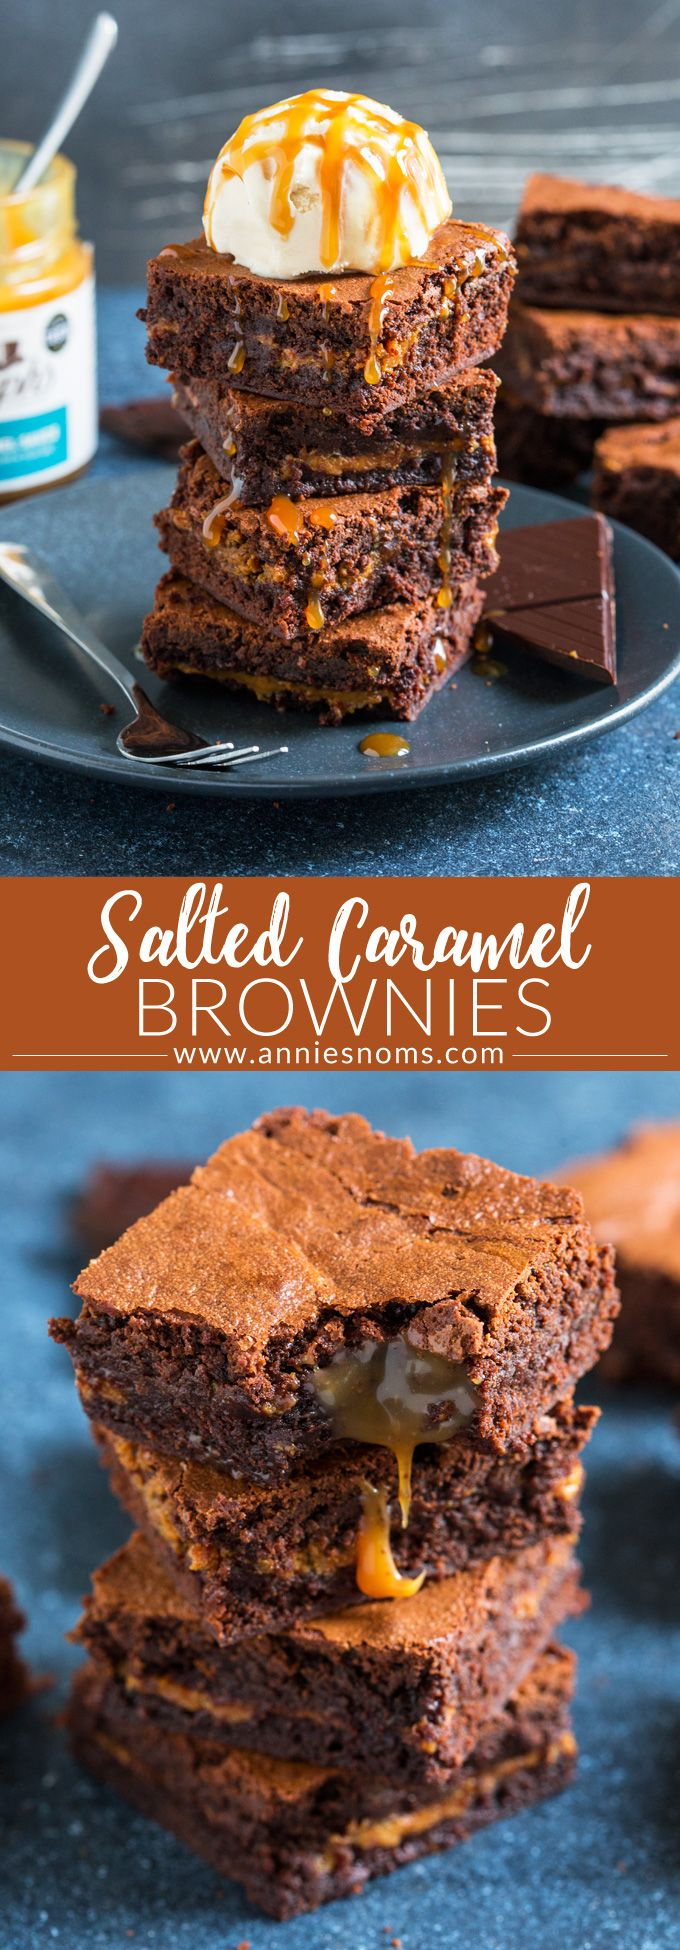 What could make rich and fudgy brownies better? A layer of salted caramel of course! These Salted Caramel Brownies are the stuff of dreams! #saltedcaramel #brownies #dessert